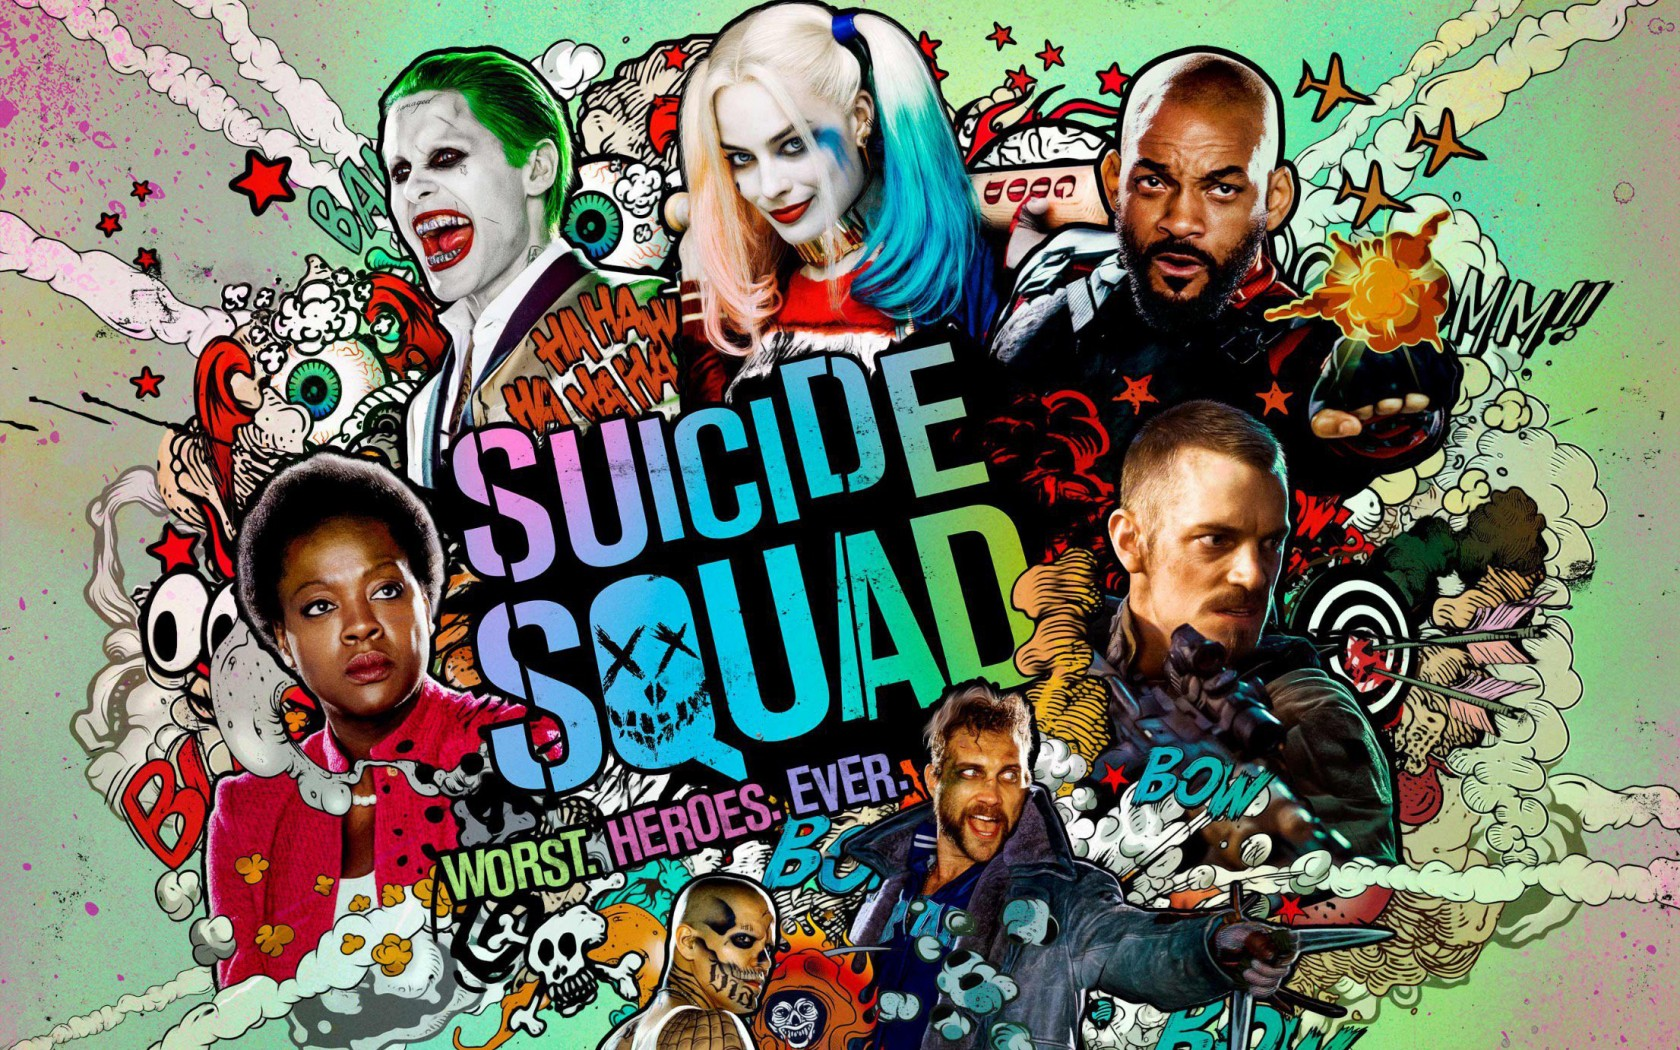 Suicide Squad Wallpapers 7SDC7BR 1680x1050   4USkY 1680x1050